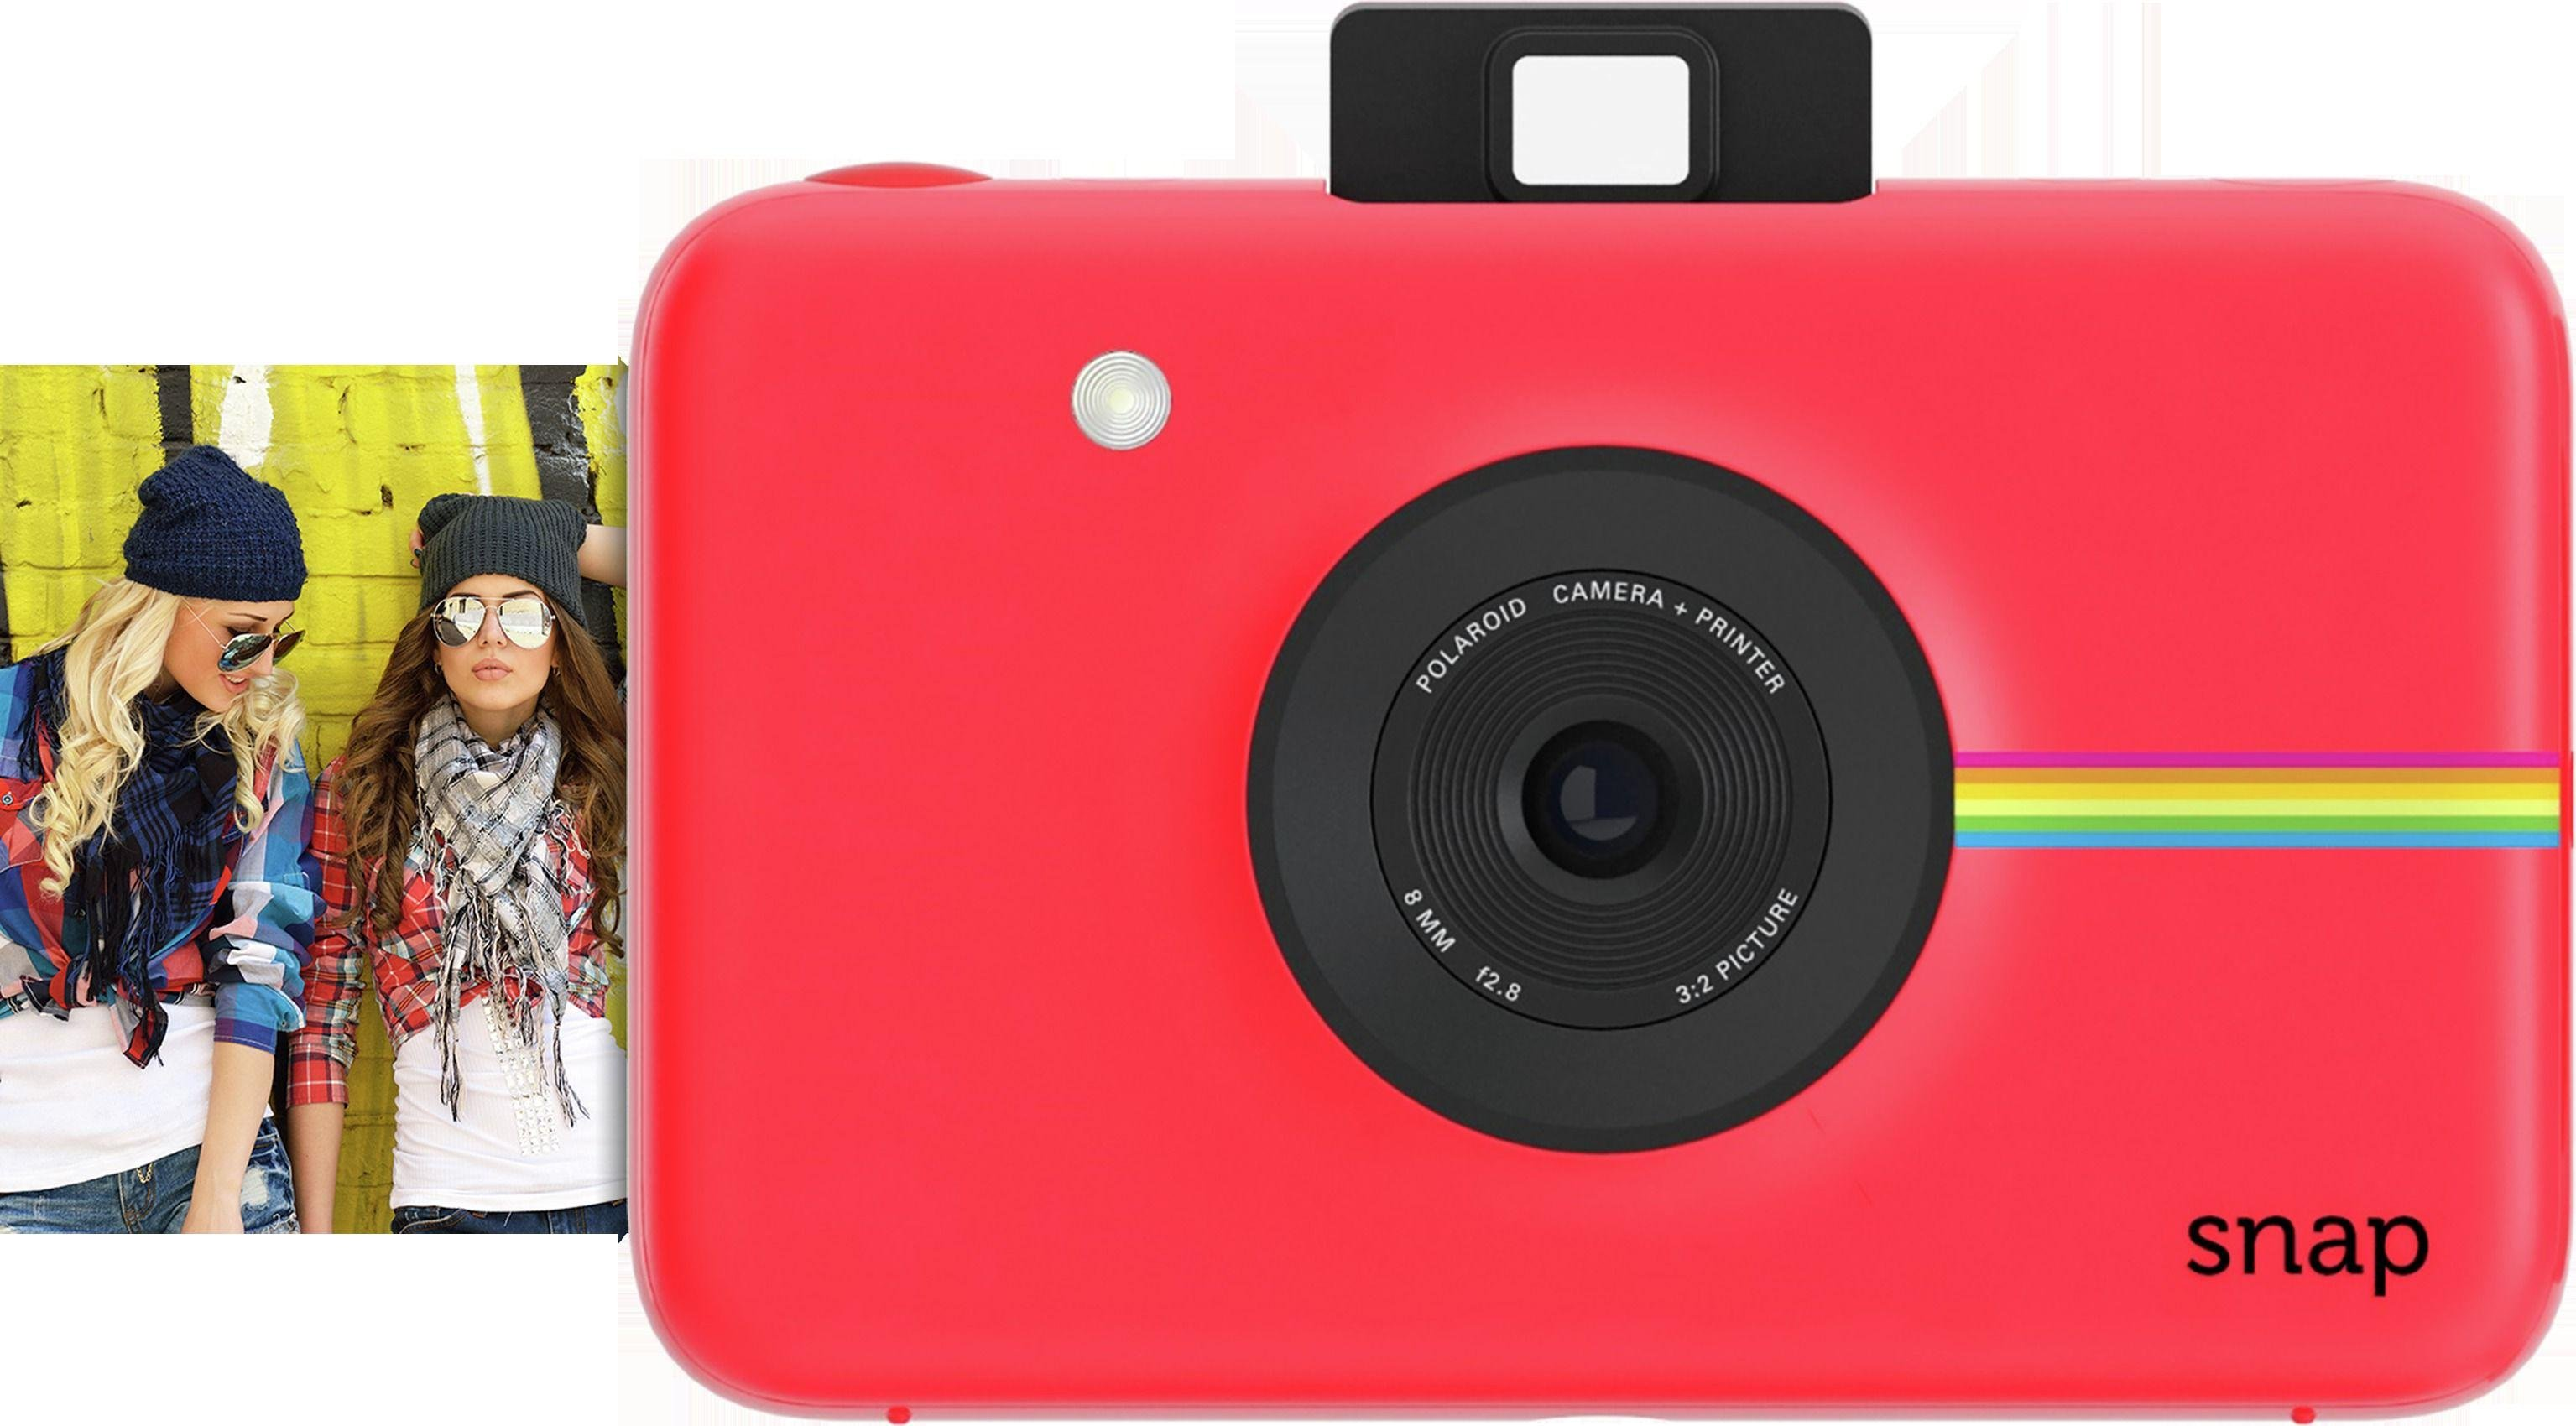 Polaroid - SnapInstant Print Digital Camera with 20 shots - Red